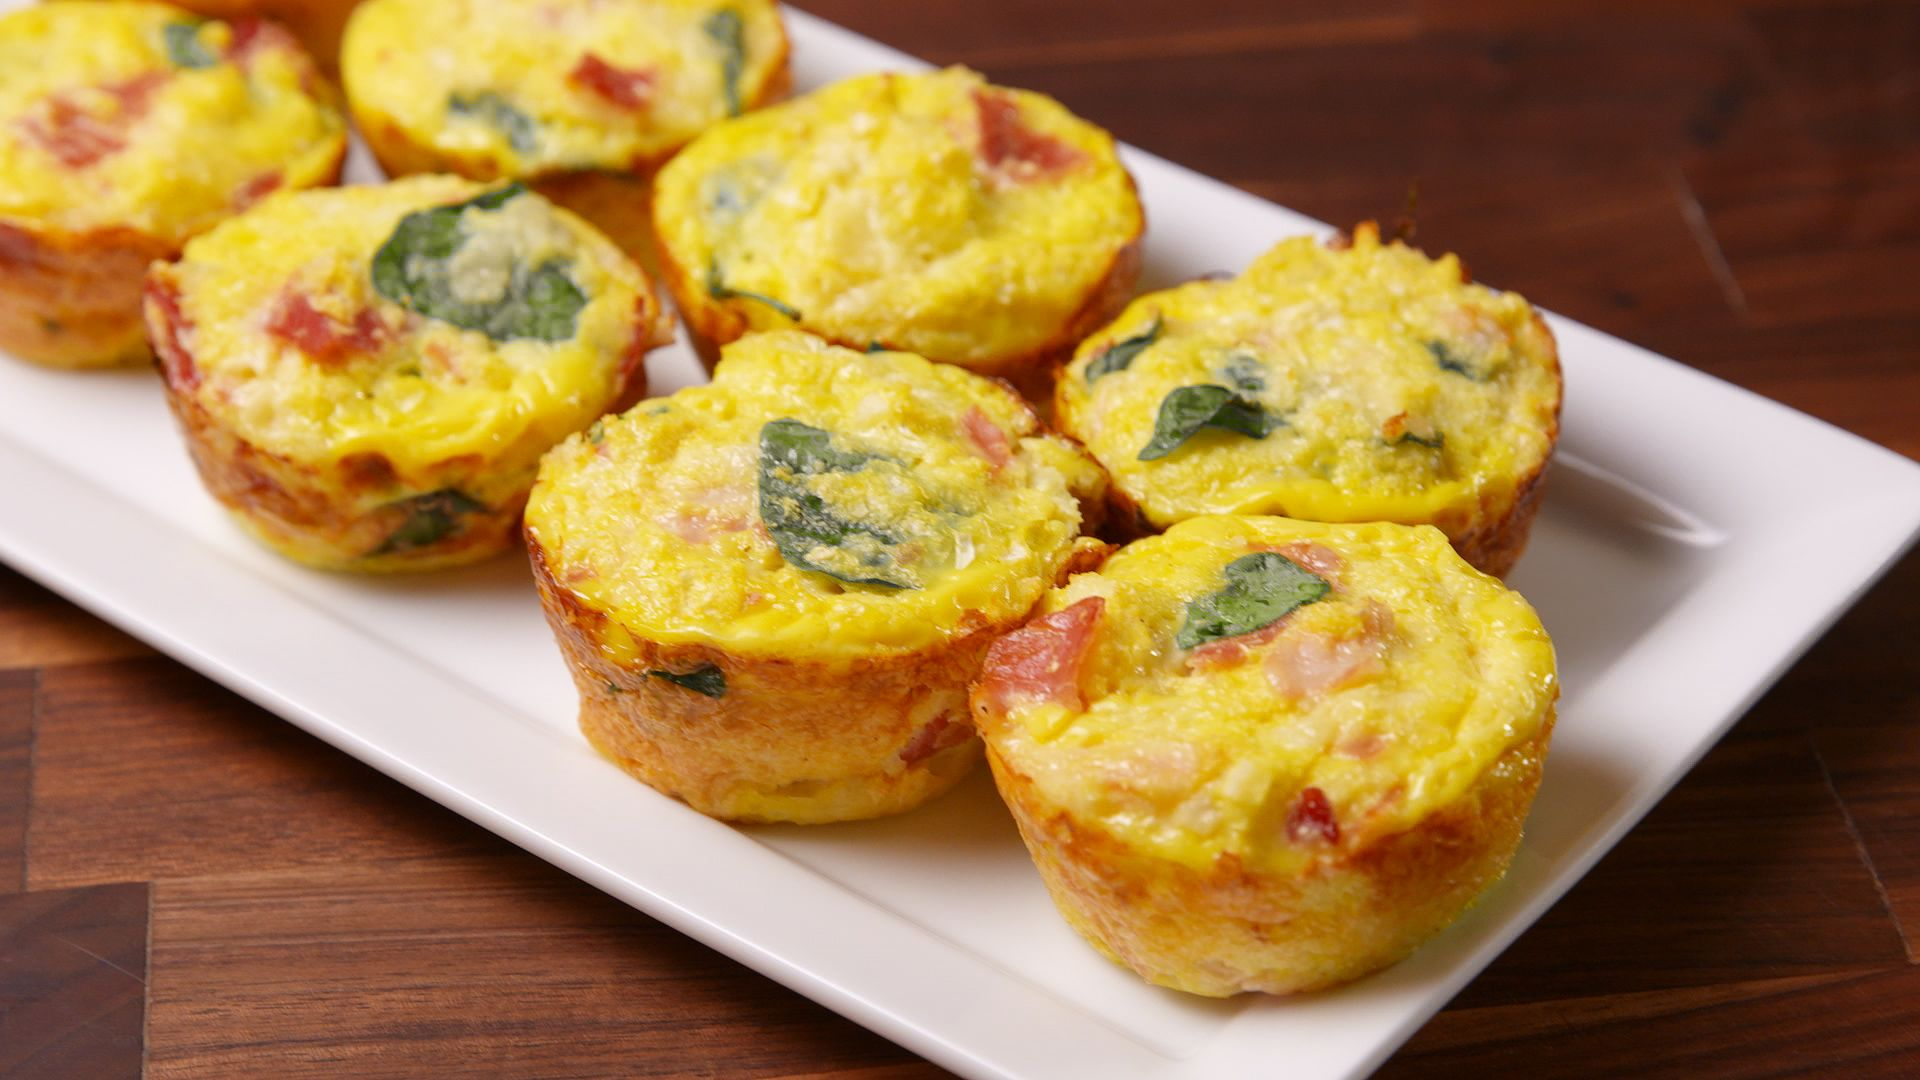 Baking Breakfast Cauliflower Muffins Video Breakfast Cauliflower Muffins Recipe How To Video